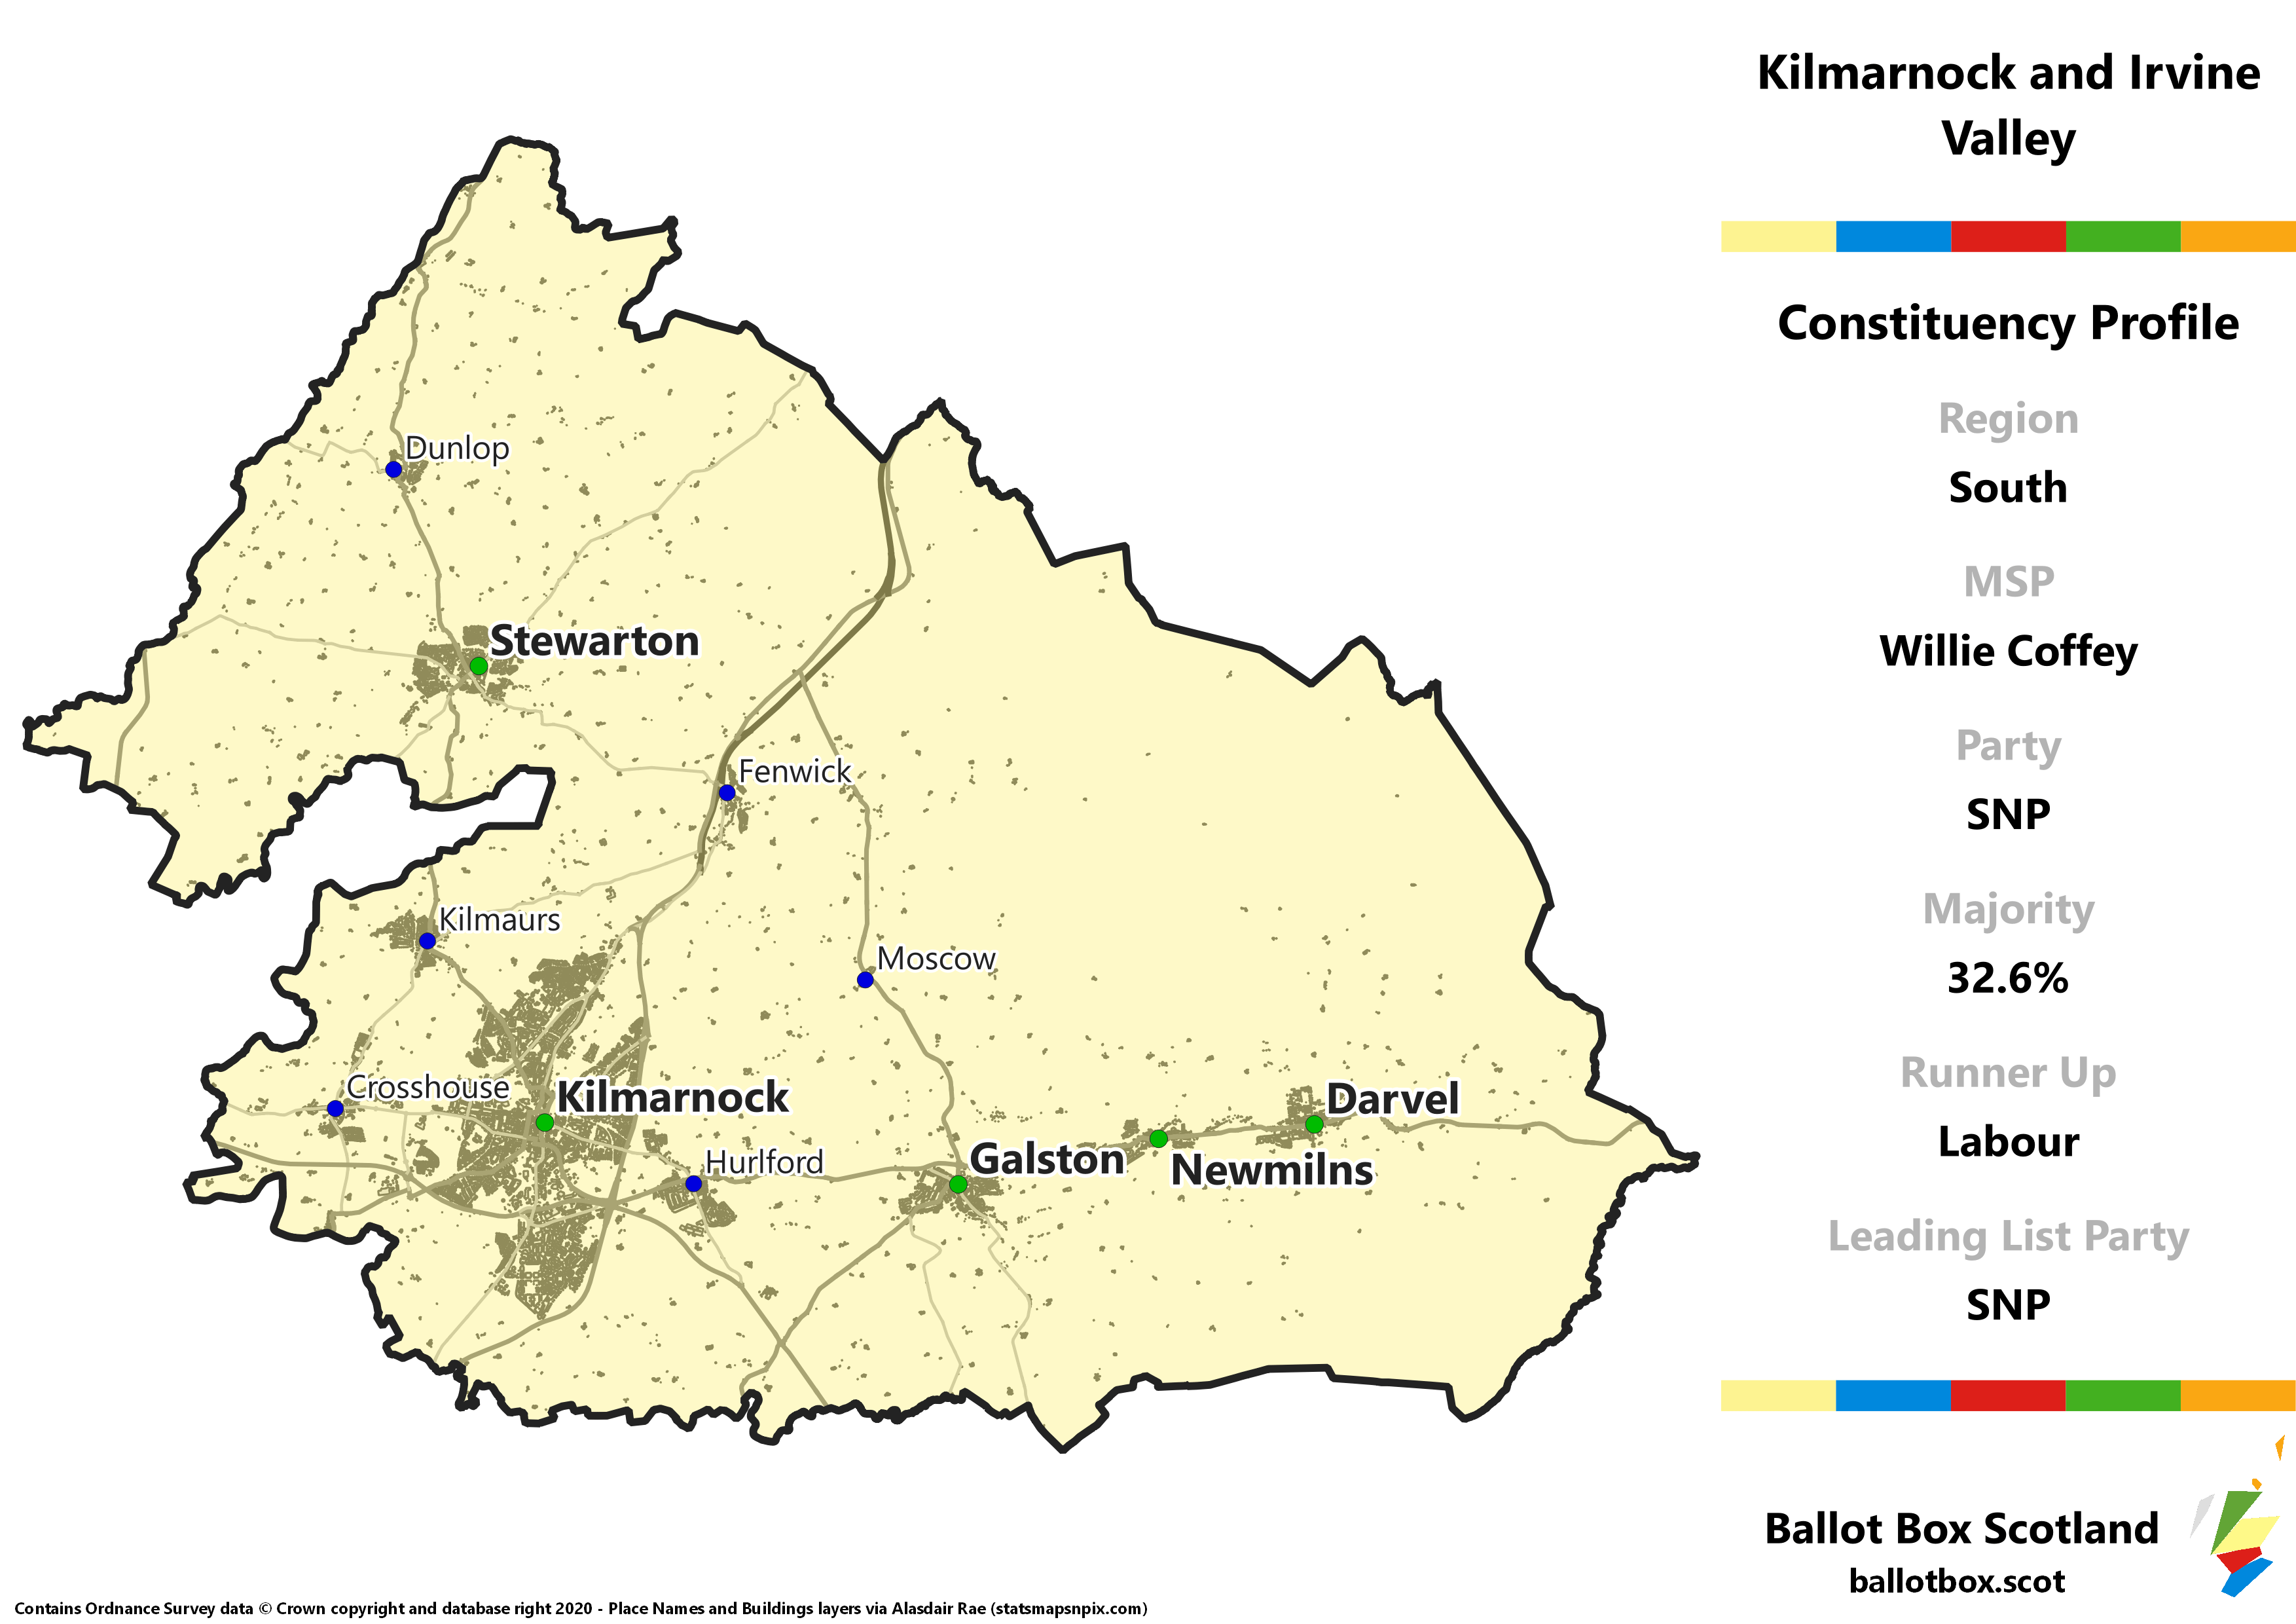 South Region – Kilmarnock and Irvine Valley Constituency Map